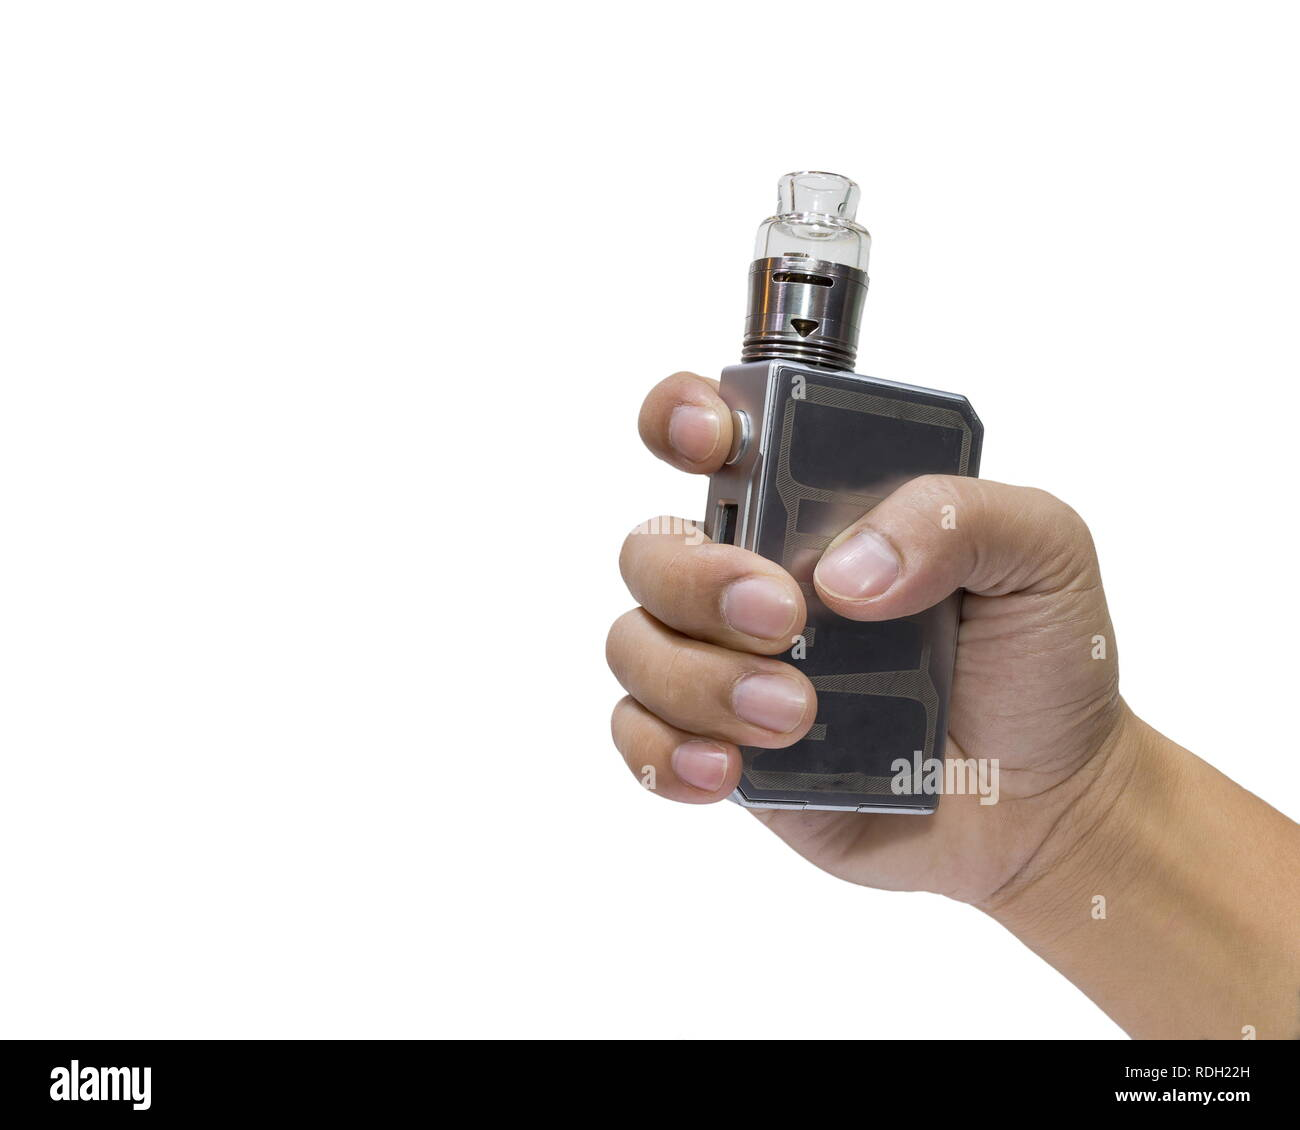 Man holding a big electronic cigarettes or vapor cigarette isolated on white background. - Stock Image